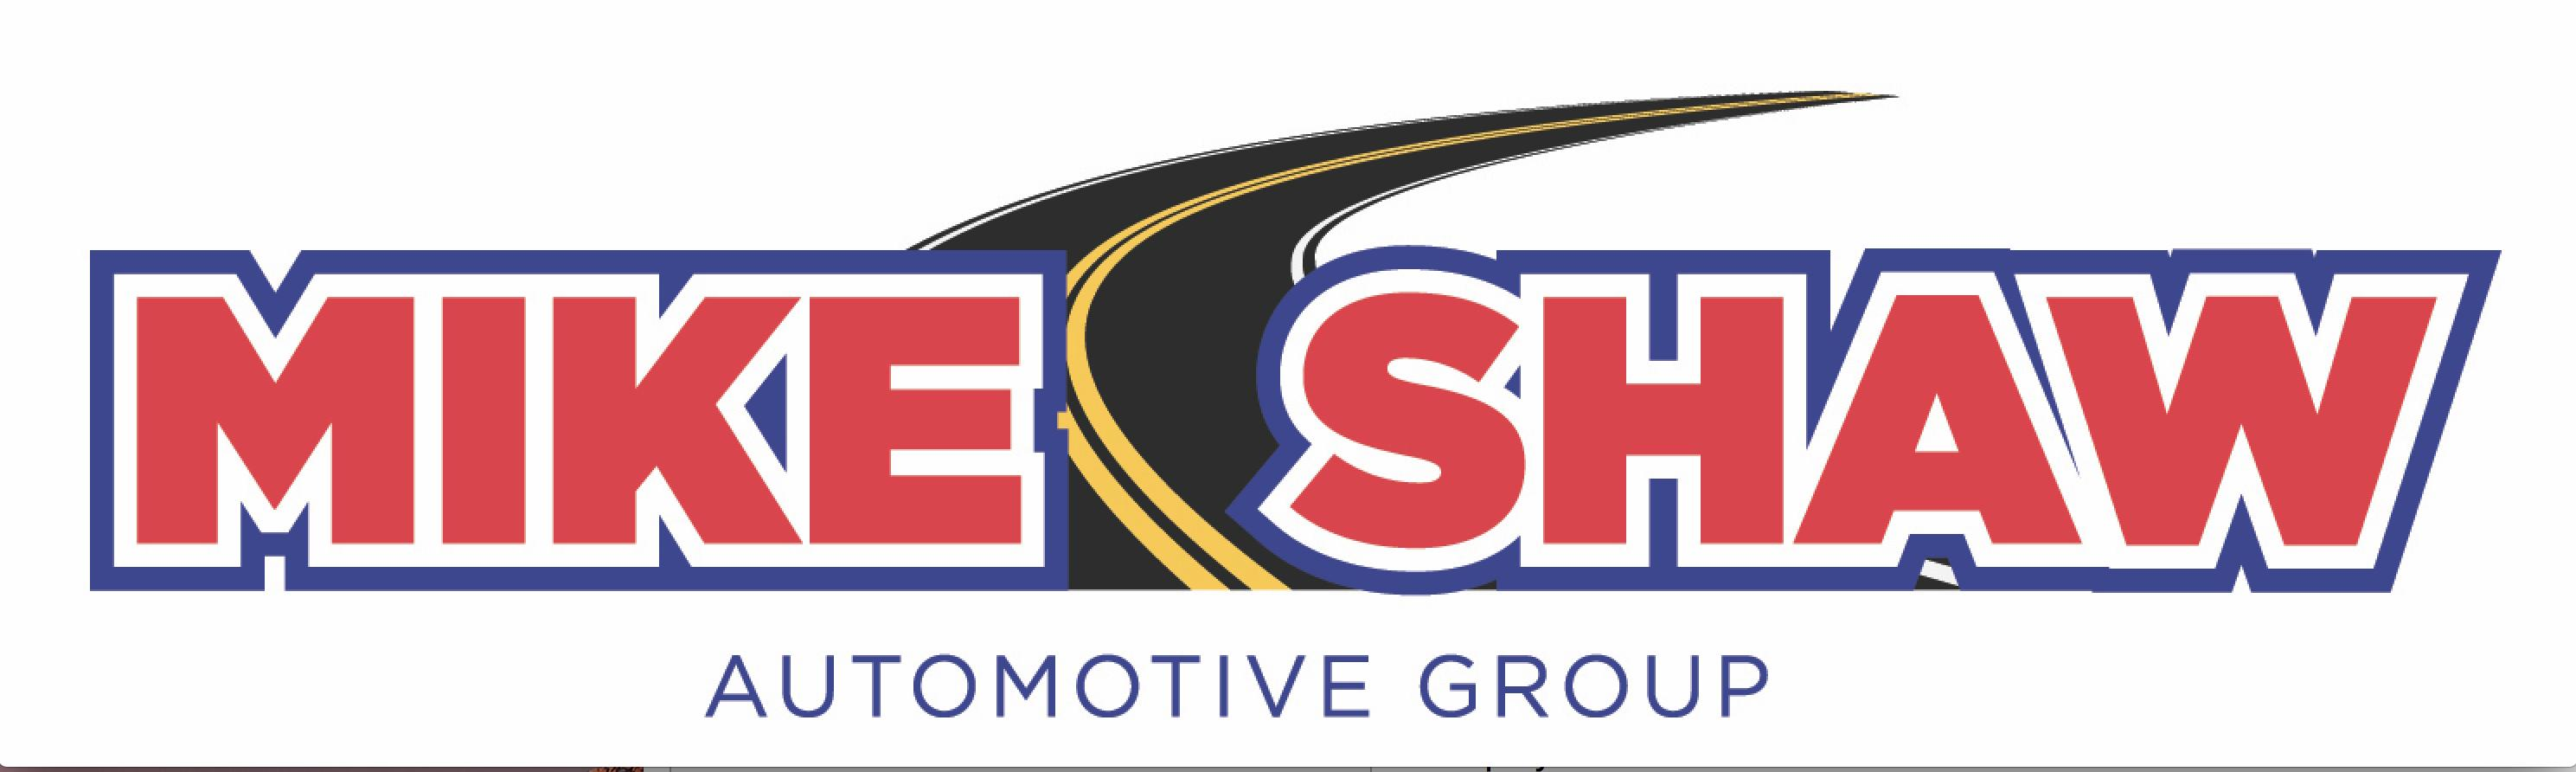 mike shaw automotive group